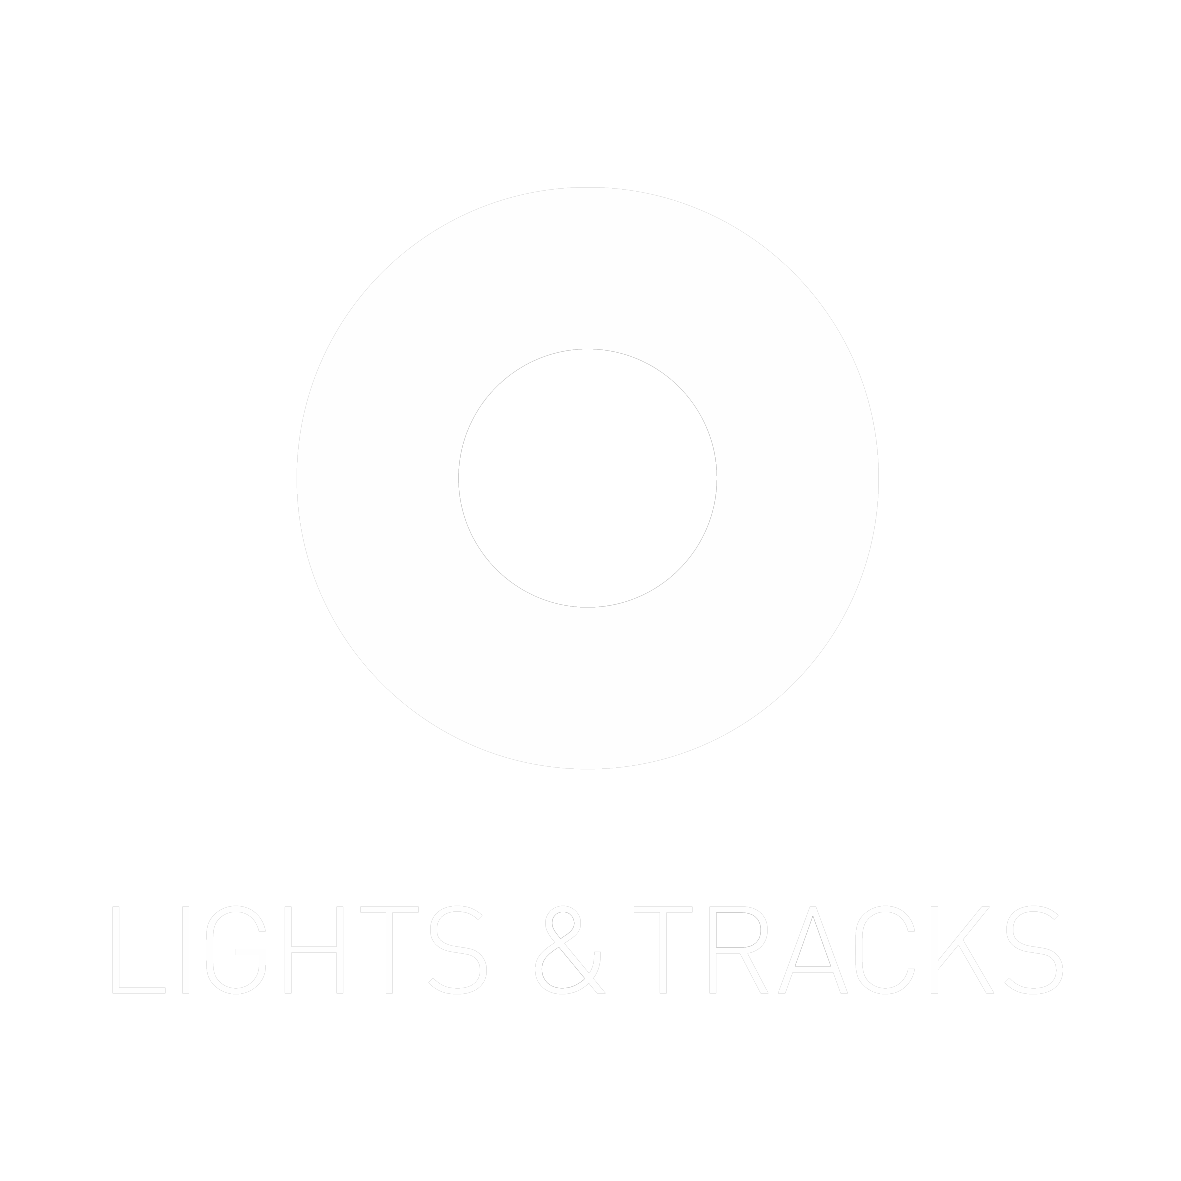 Lights and Tracks